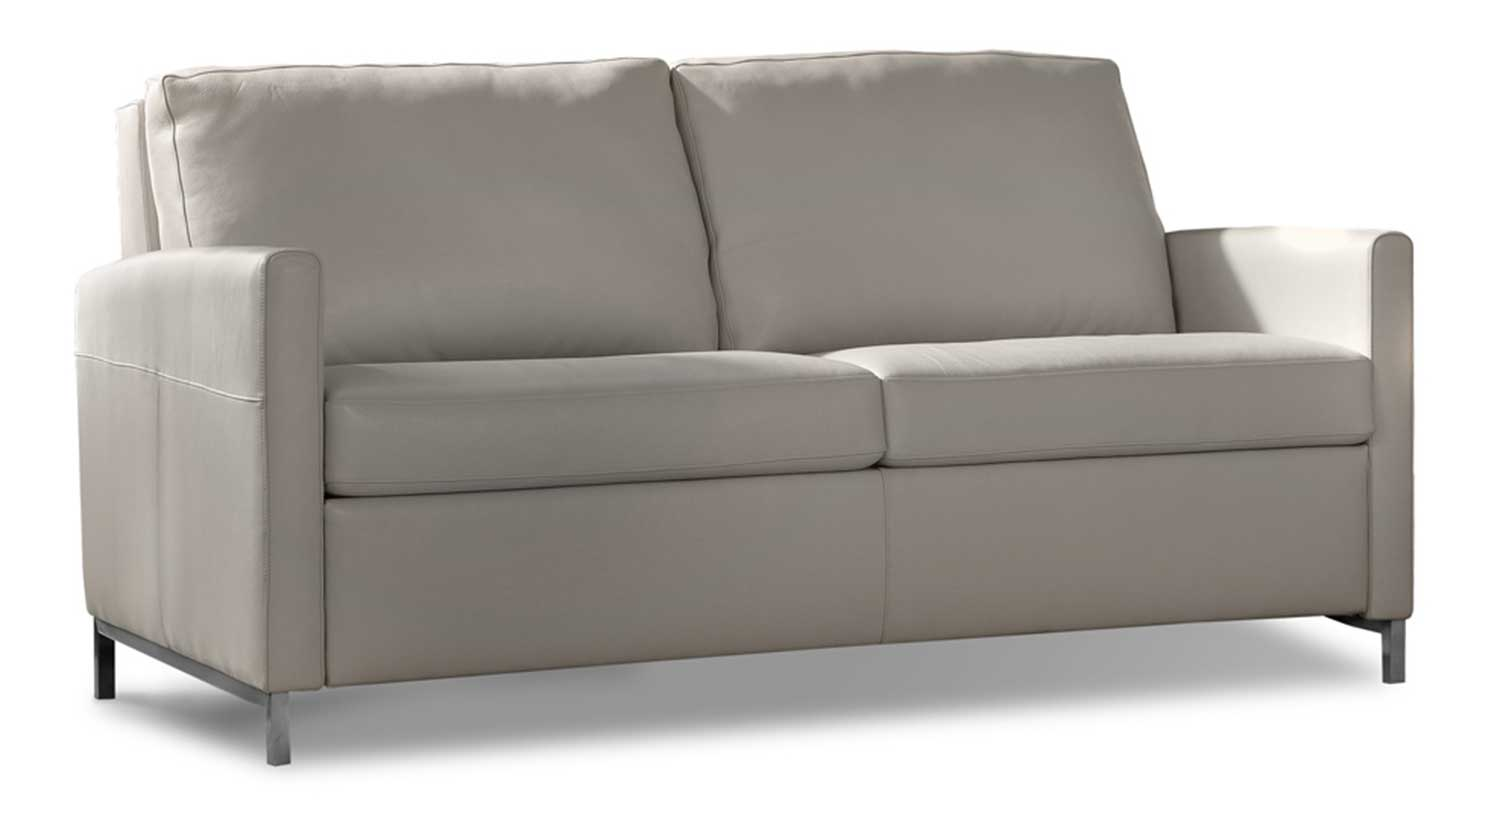 ashford sofa boston interiors contemporary white sectional sleeper alluring leather queen